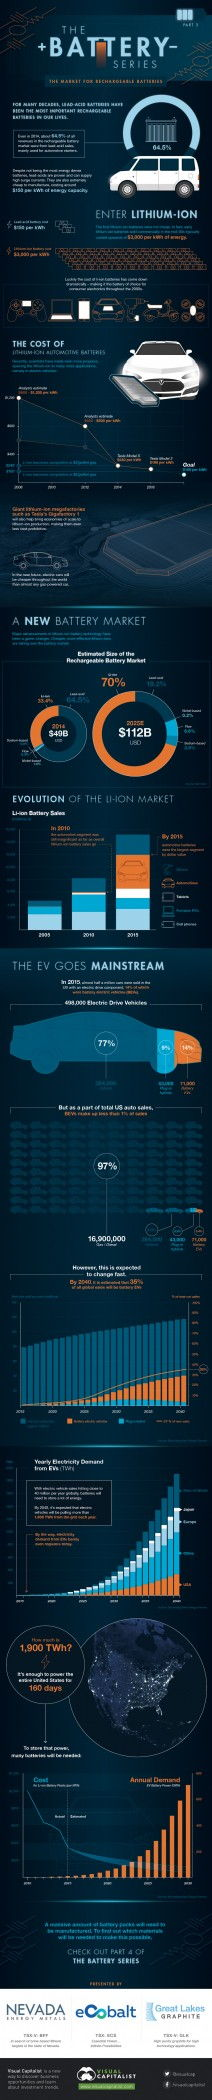 Infographic: Explaining the Surging Demand for Lithium-Ion Batteries